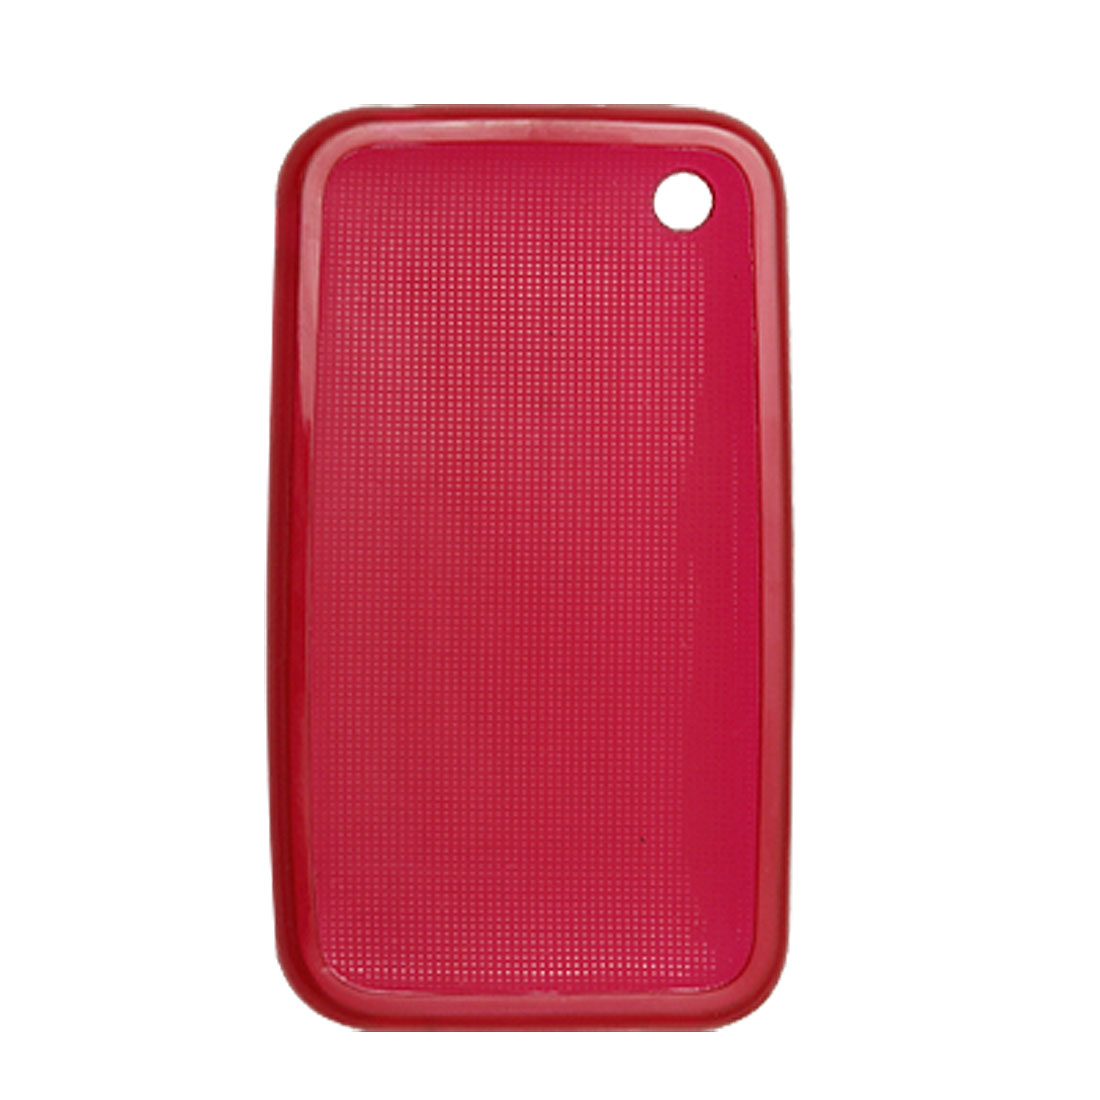 Red Soft Plastic Skin Case Cover for Apple iPhone 3G